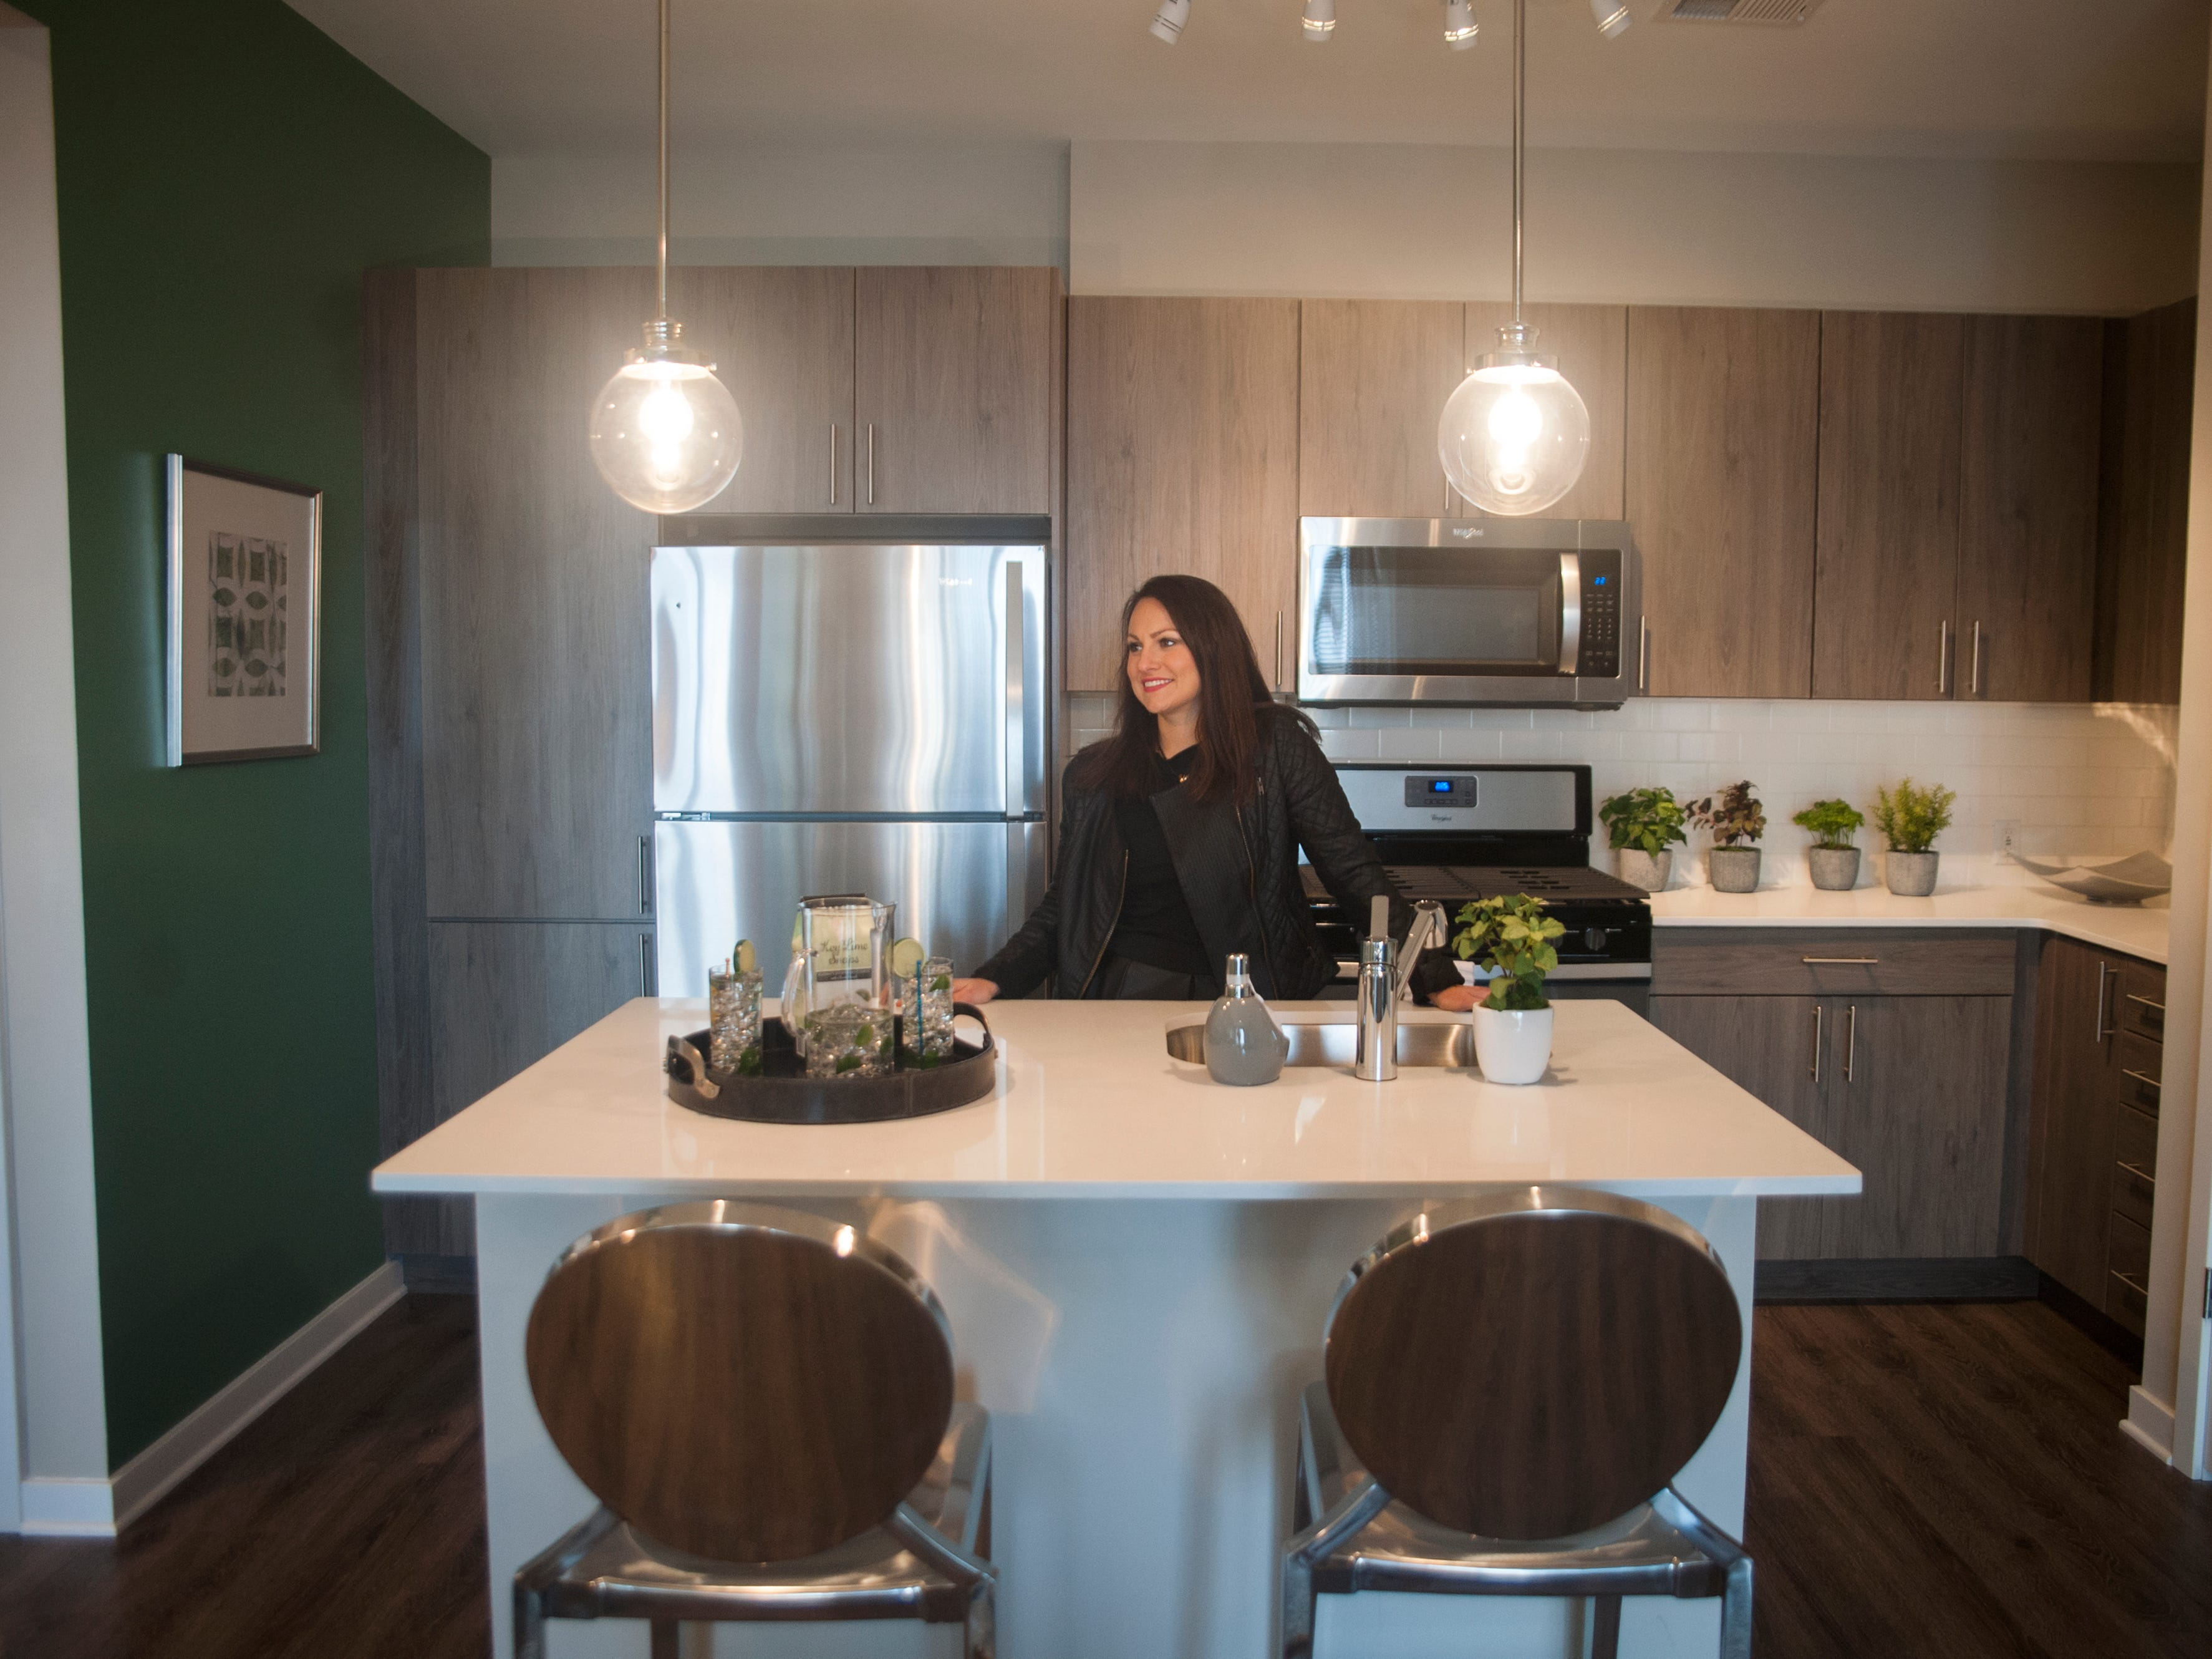 Teresa Sydorko, Director of Communications and Social Media for Delco Development, stands in the kitchen area of a model apartment of Haddon Point, a large-scale apartment complex located on the former Pennsauken Mart site, that opened Wednesday, November 14, 2018.